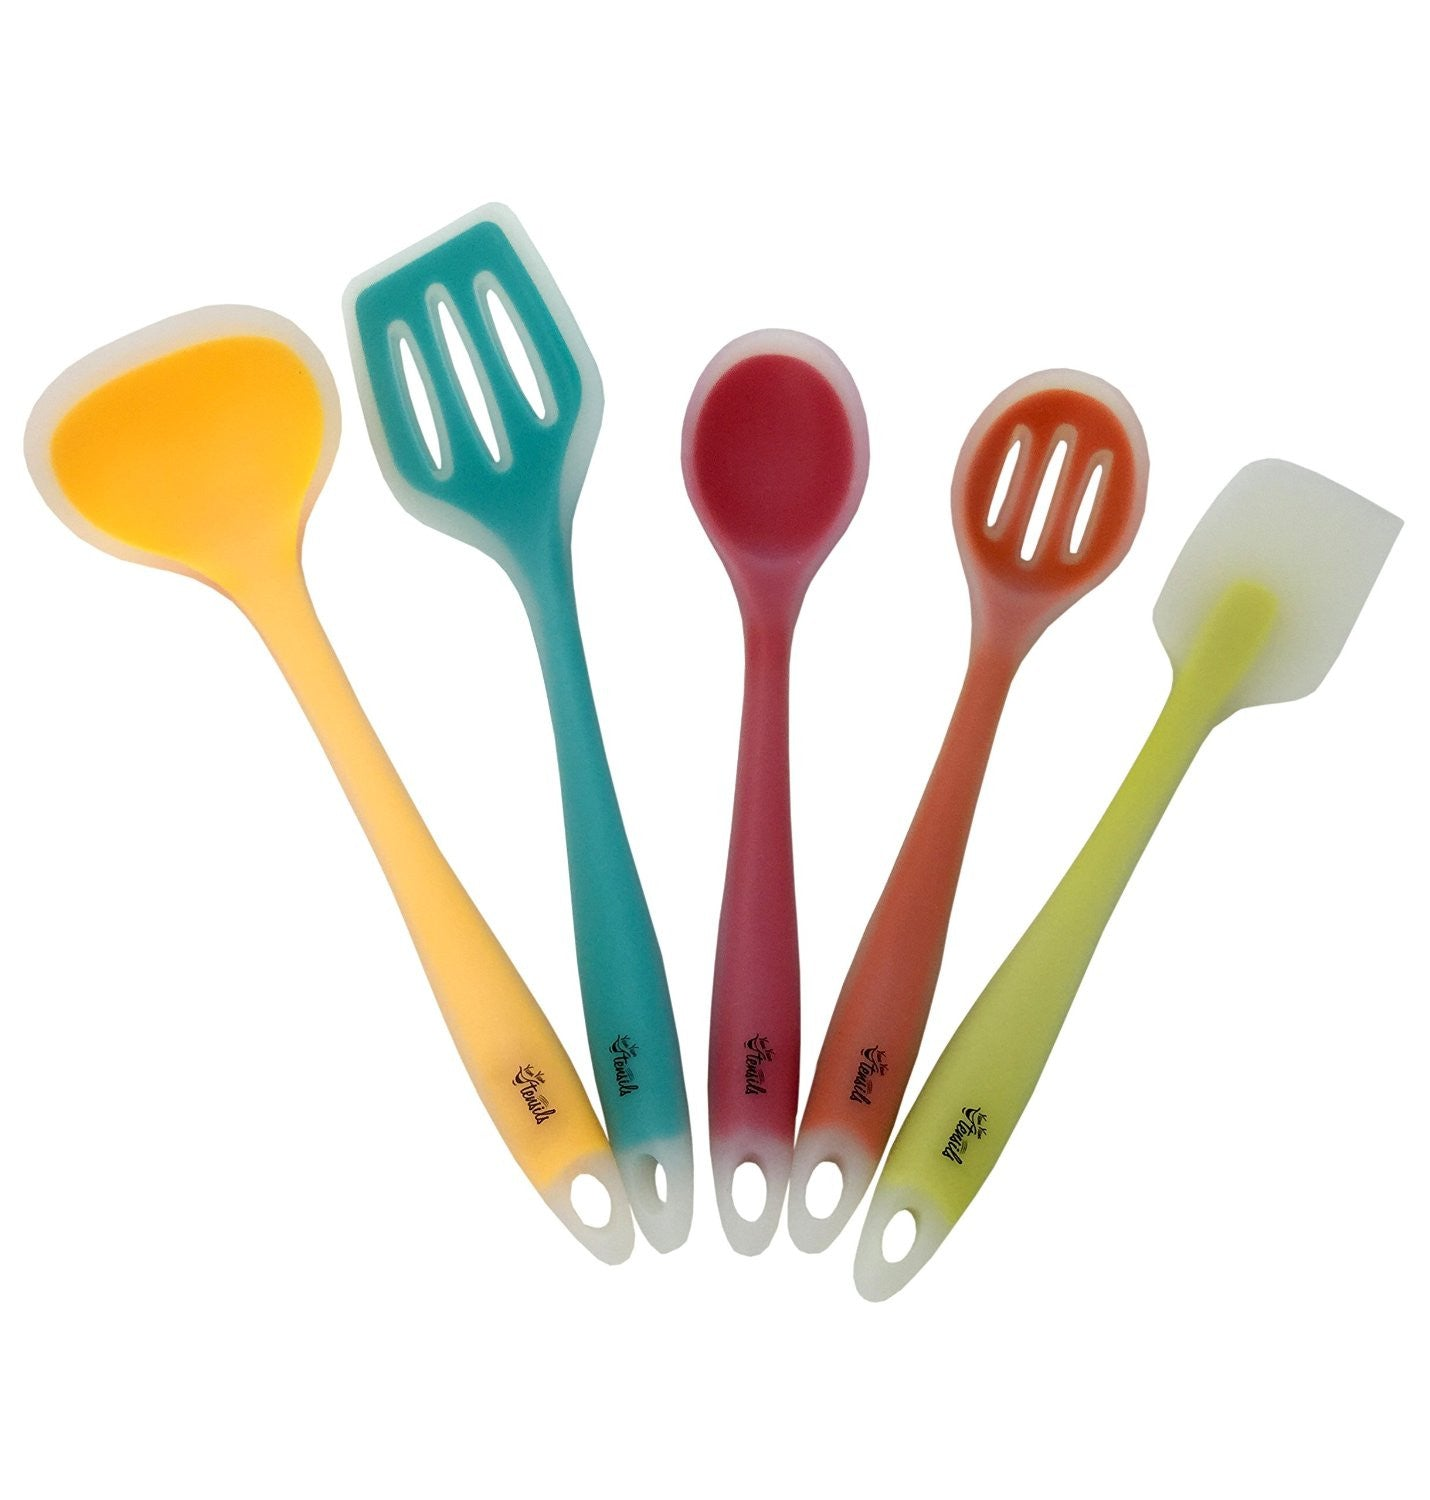 Silicone cooking utensils set of 5 for the kitchen one for Colorful kitchen tools